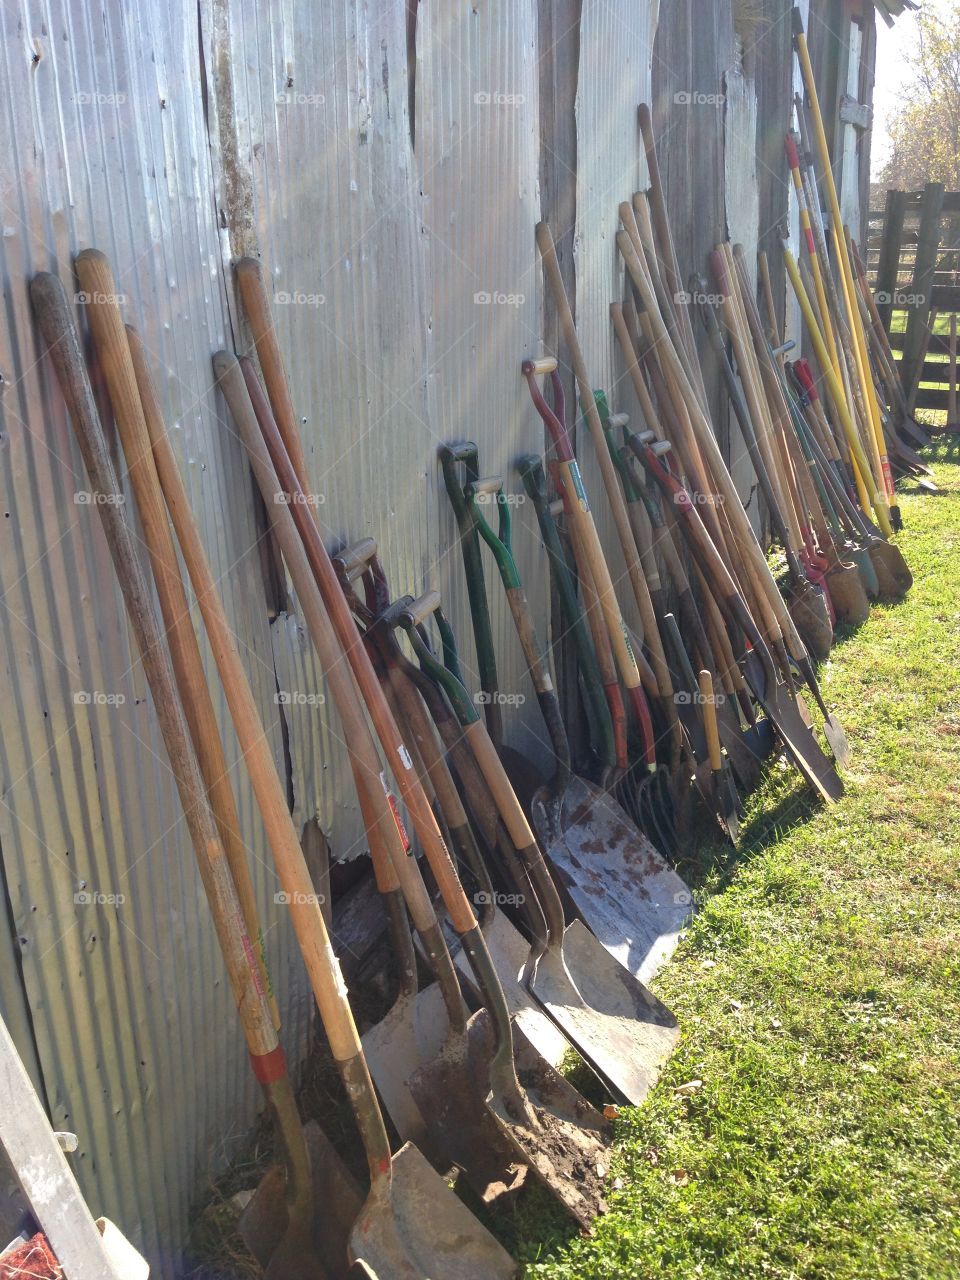 Shovels leaning on a barn